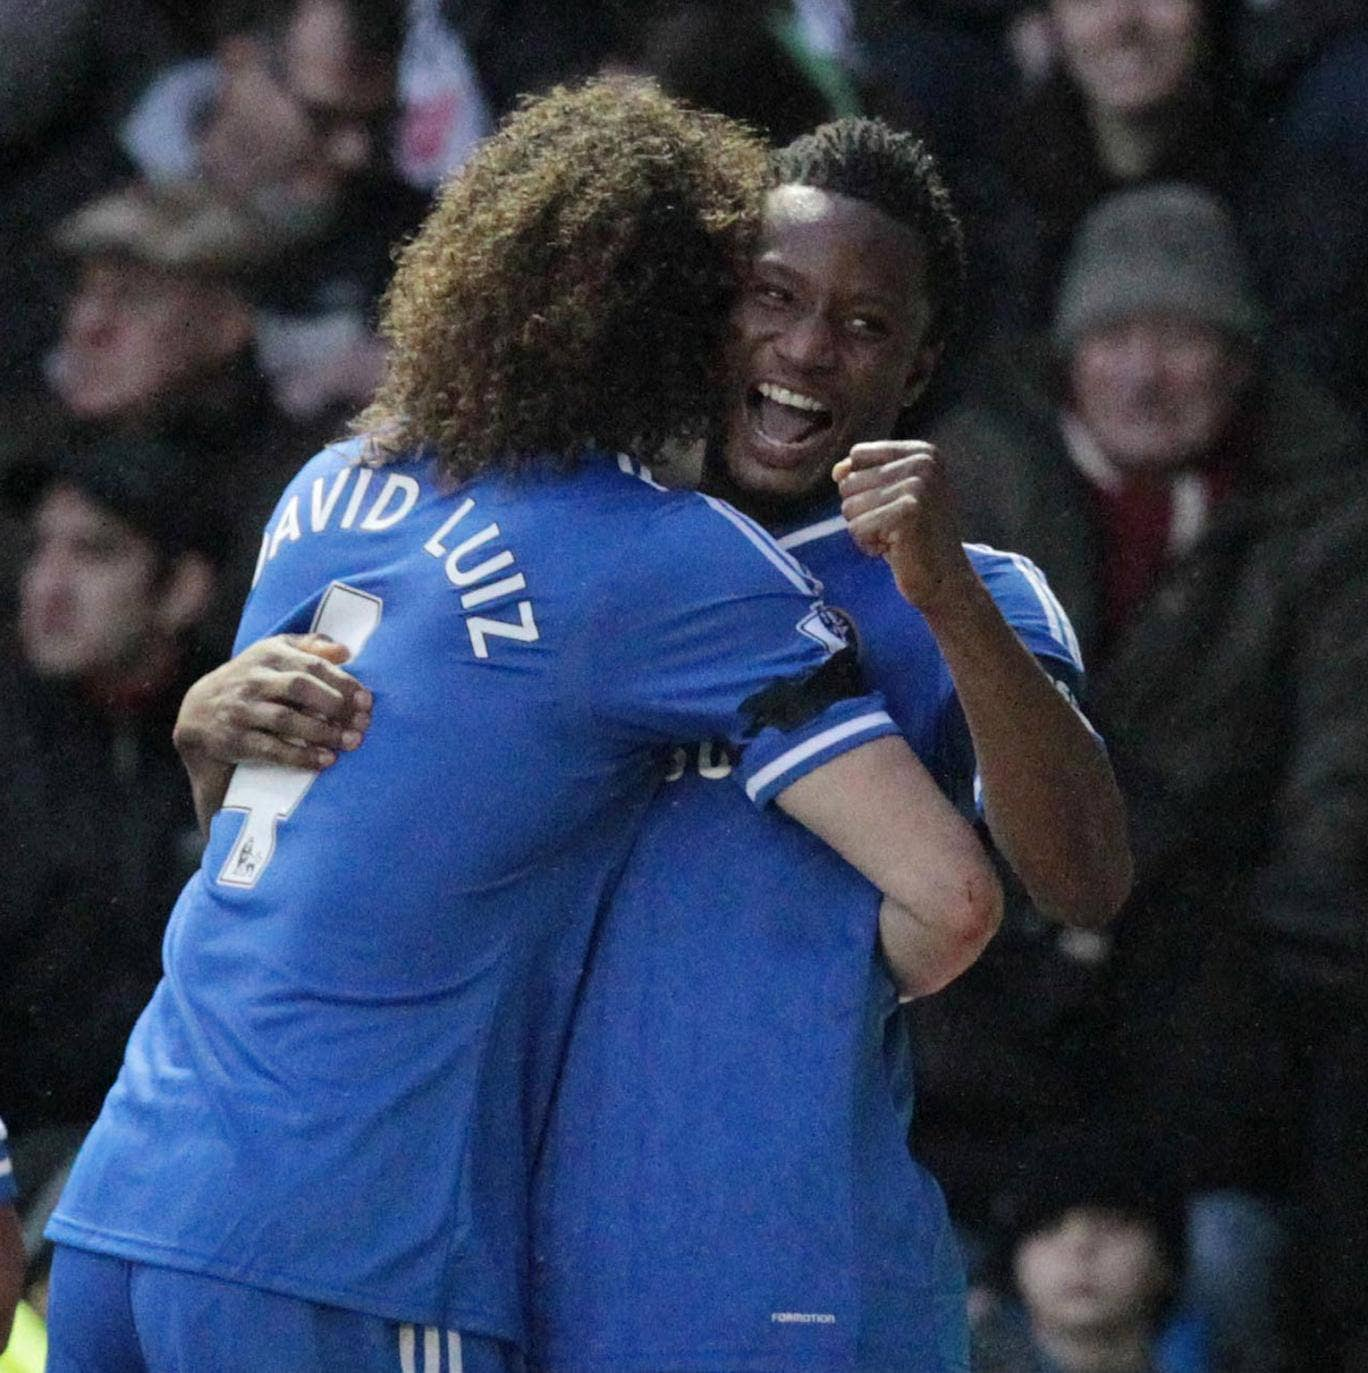 John Obi Mikel celebrates scoring against Derby, but one Blues fan wasn't smiling after Lee Mitchell promised to get the midfielder's name tattooed on his bum if he scored